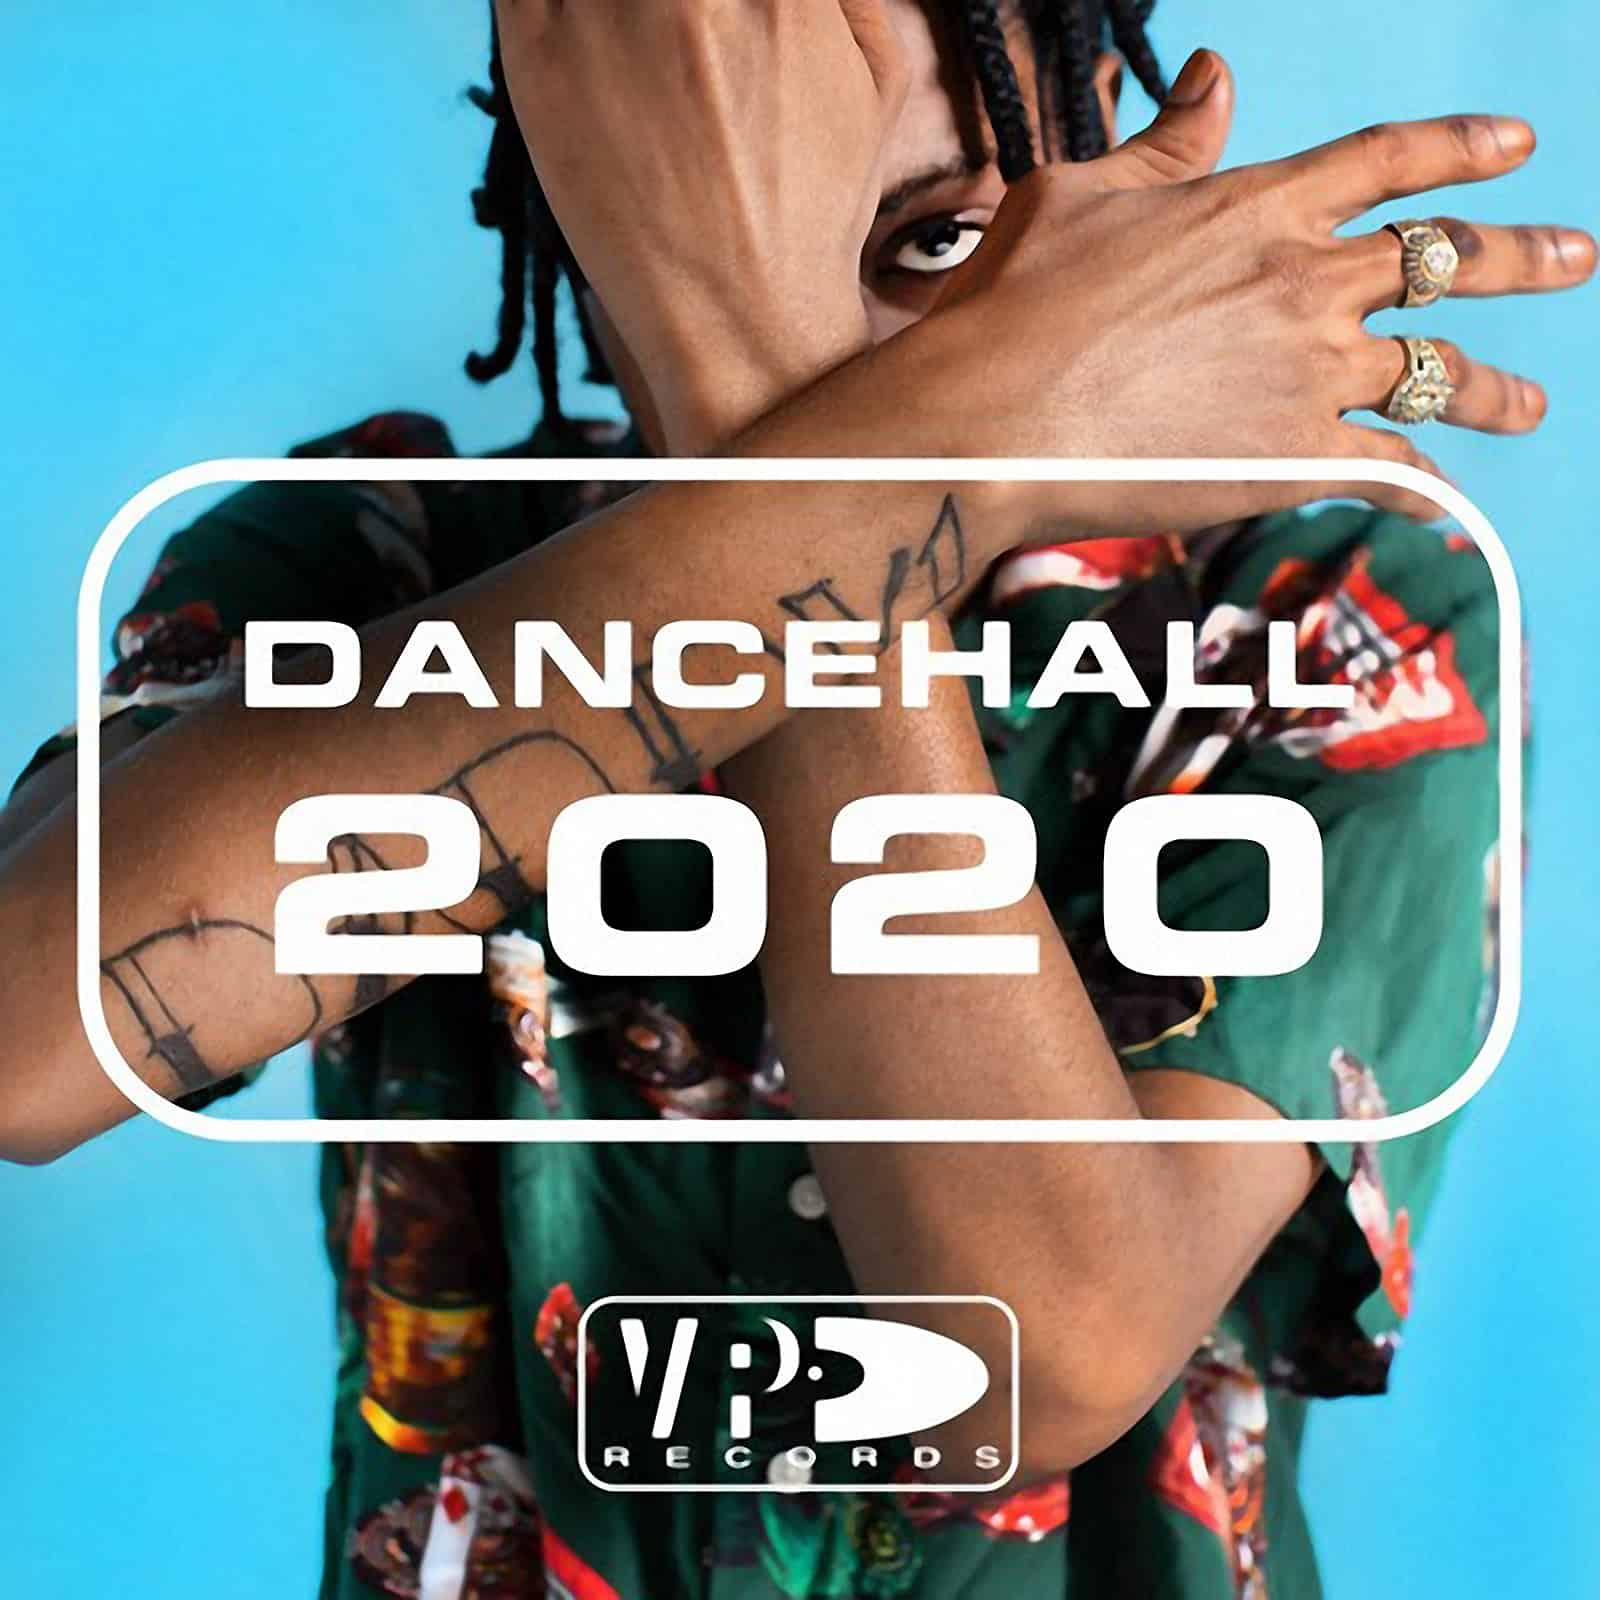 King Waggy Tee - Dancehall 2020 Mixtape